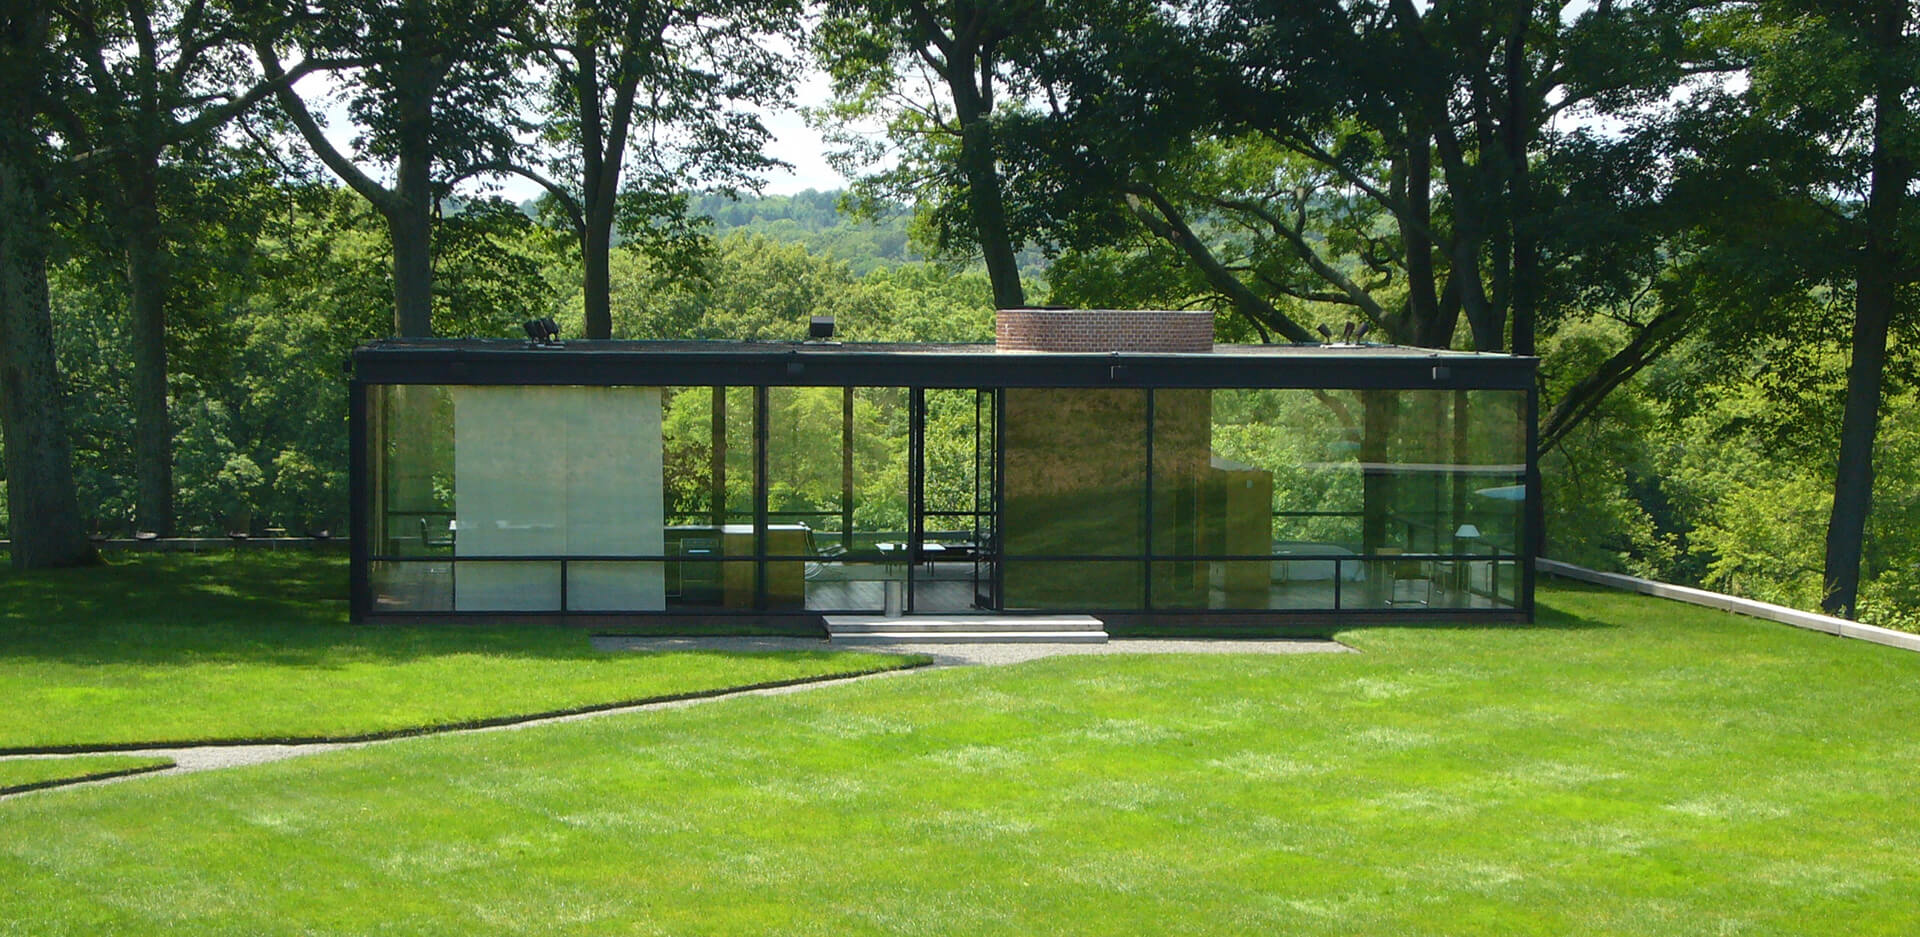 The Glass House in New Canaan, Connecticut, was built by Philip Johnson in 1949 as his own residence | Philip Johnson | STIRworld